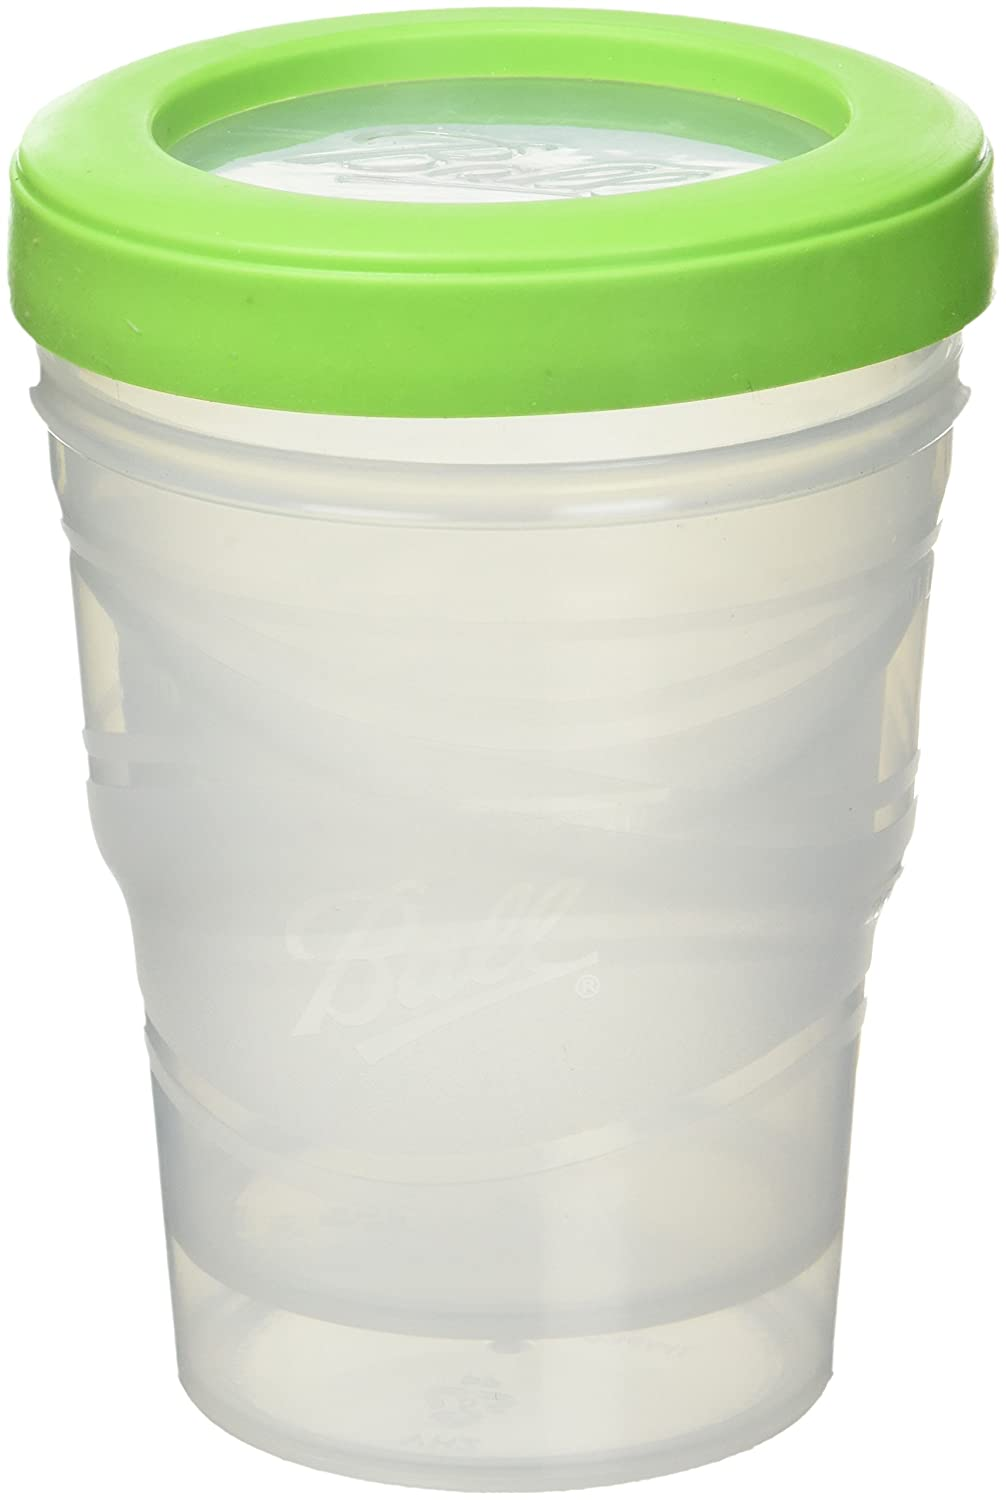 Ball Jar 8-Ounce Plastic Freezer Jar - 3 pack